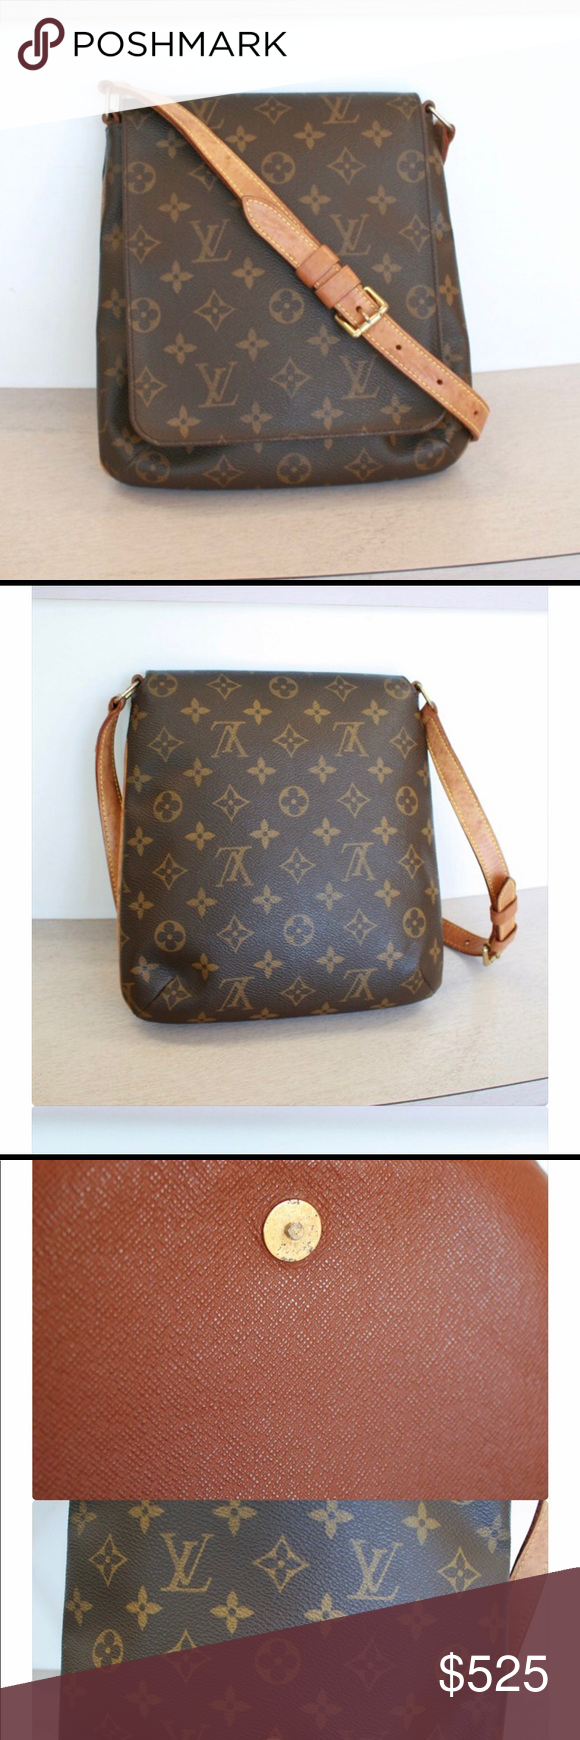 25b90ddc2a700 Authentic Louis Vuitton Musette Salsa short strap The Louis Vuitton  Monogram Canvas Musette Salsa bag is